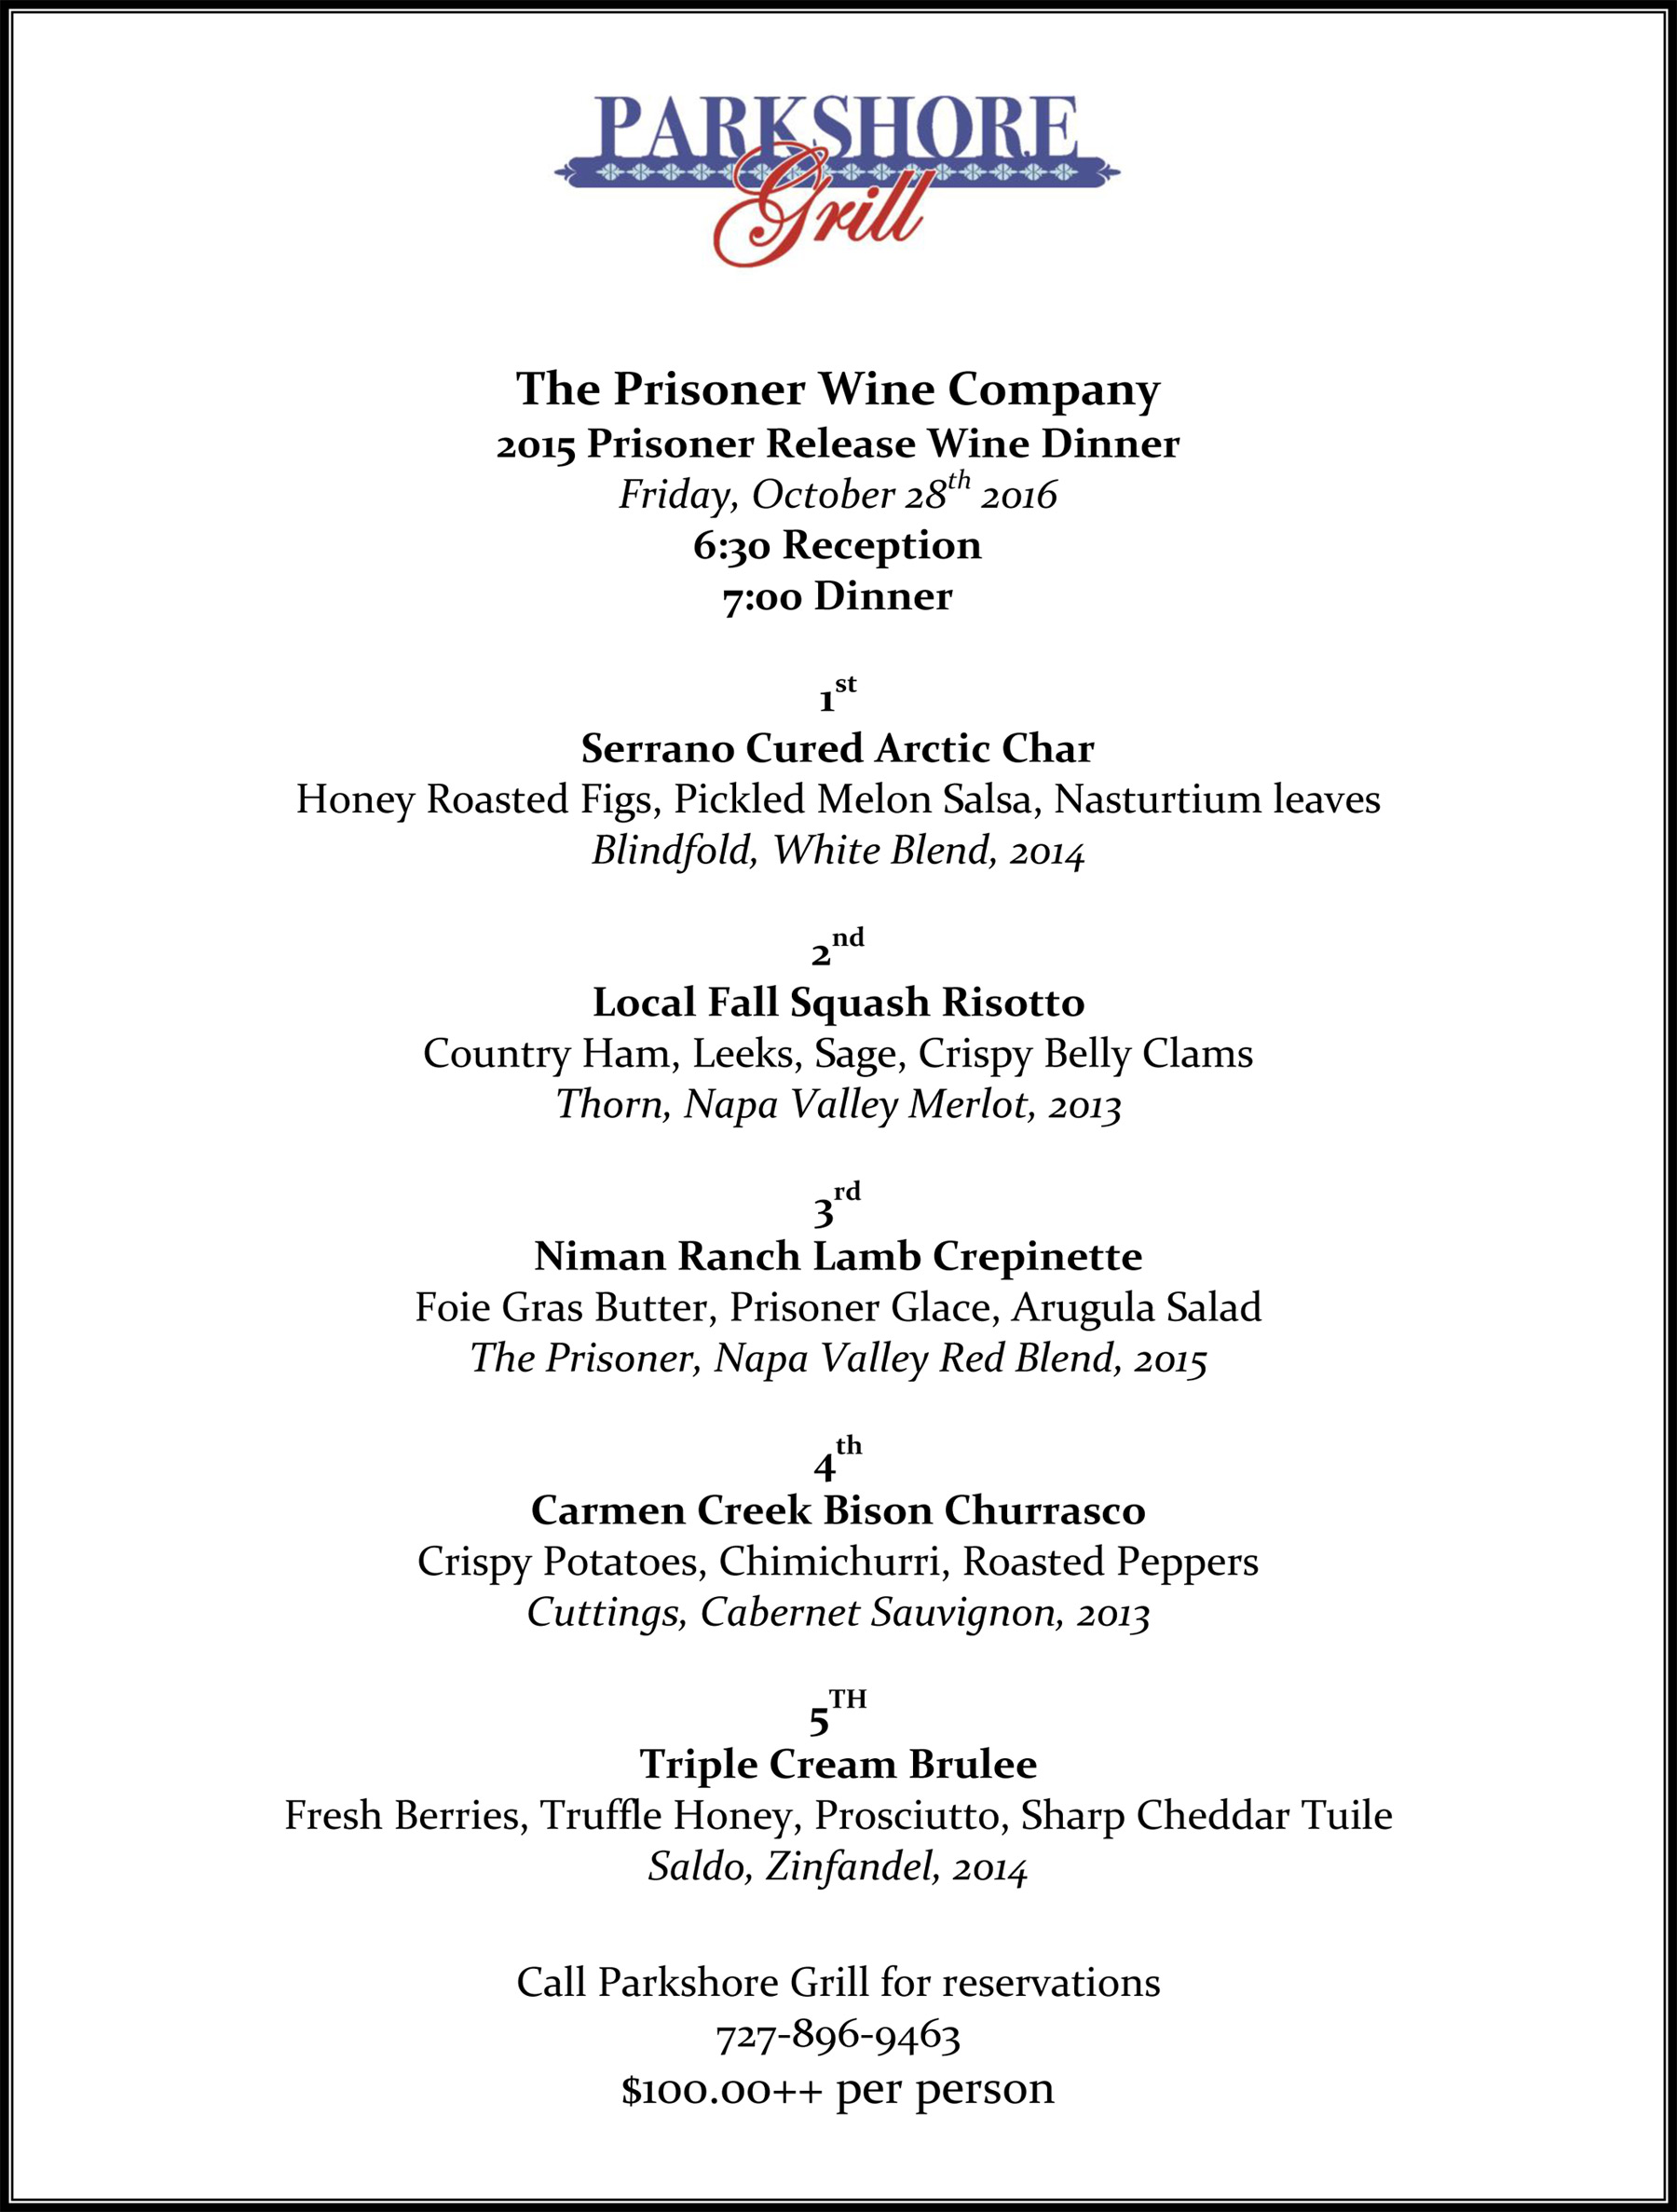 The Final Menu for The Prisoner Wine Dinner